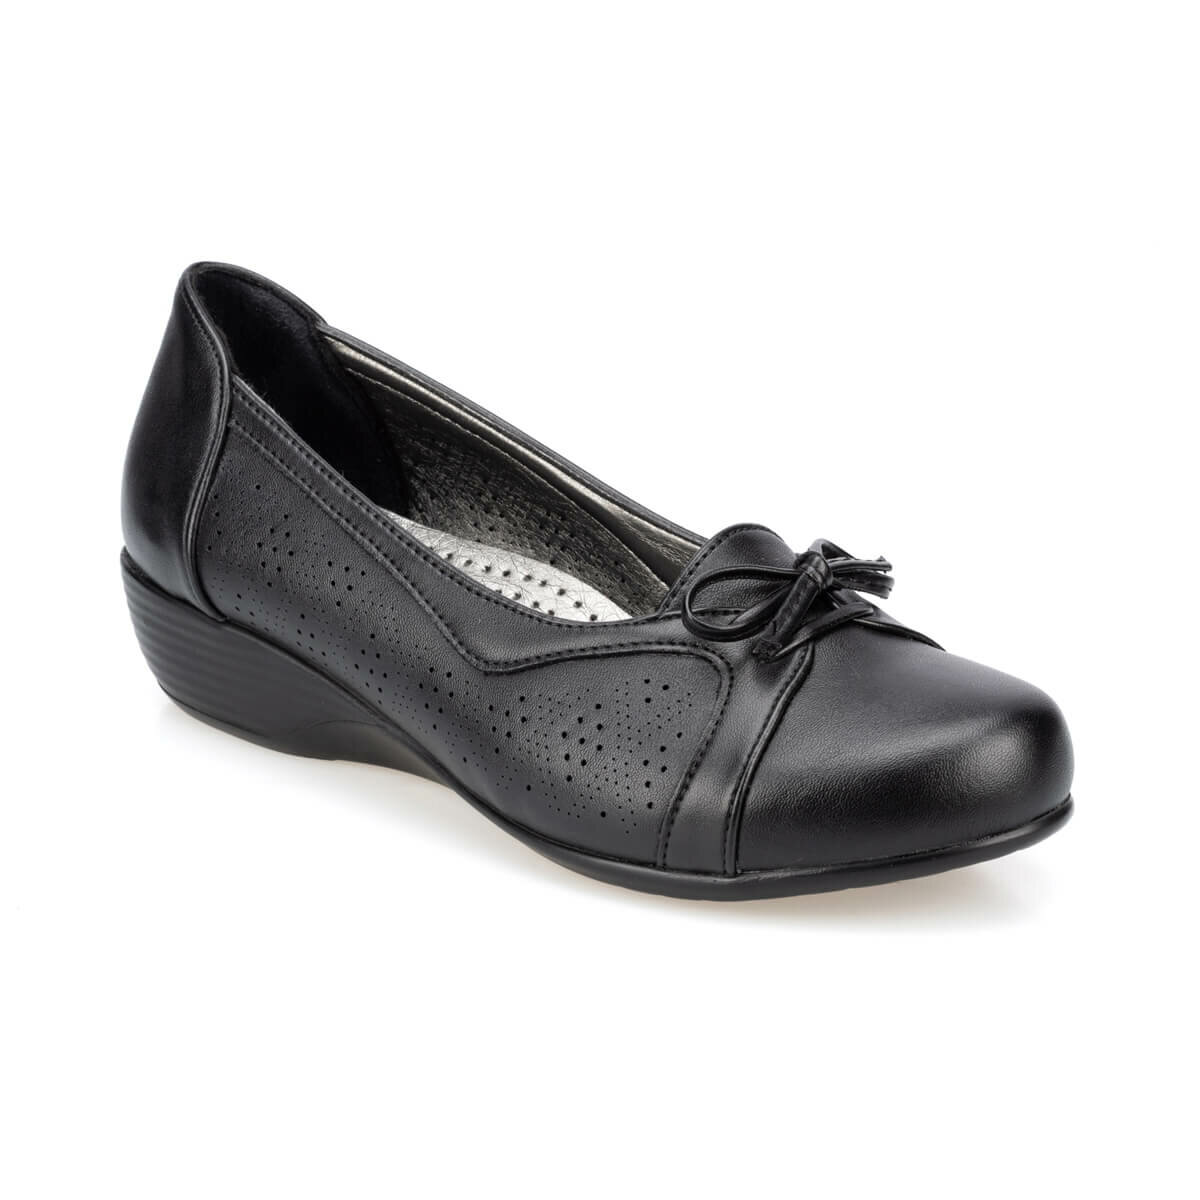 FLO 91. 158479.Z Black Women 'S Classic Shoes Polaris